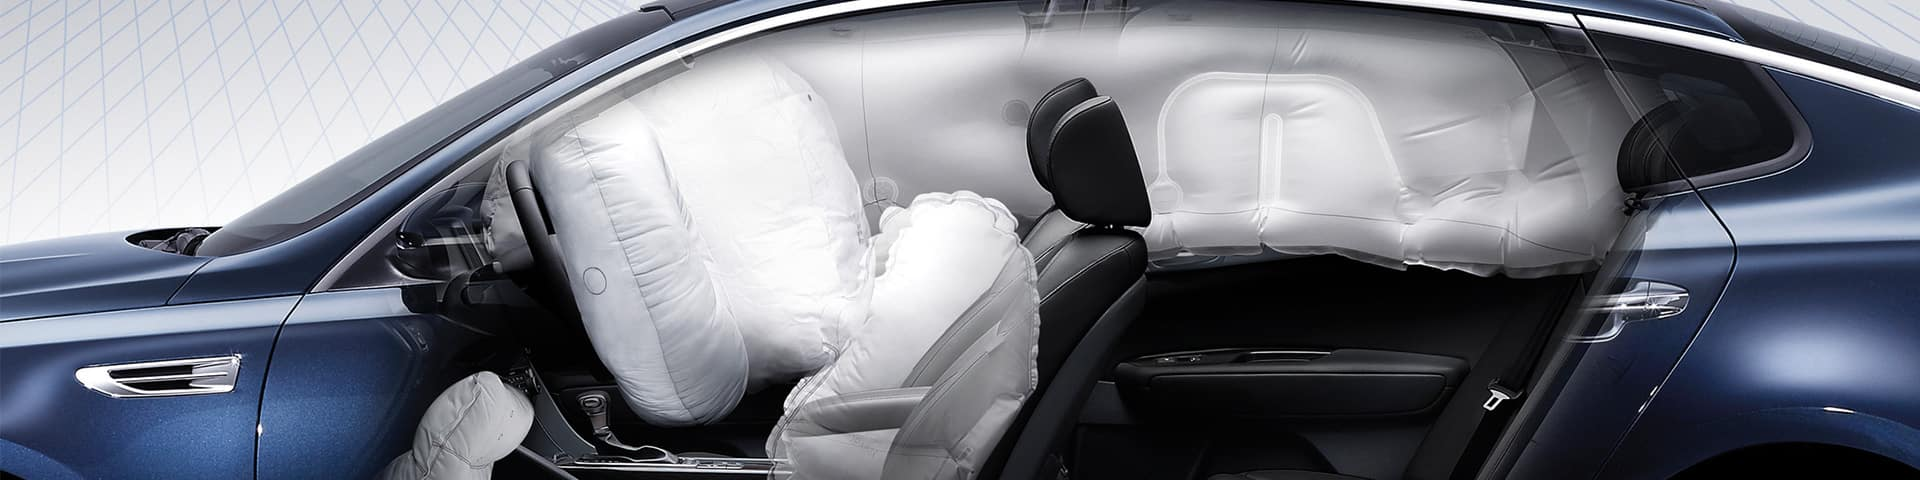 Airbags de sécurité de la berline Kia Optima